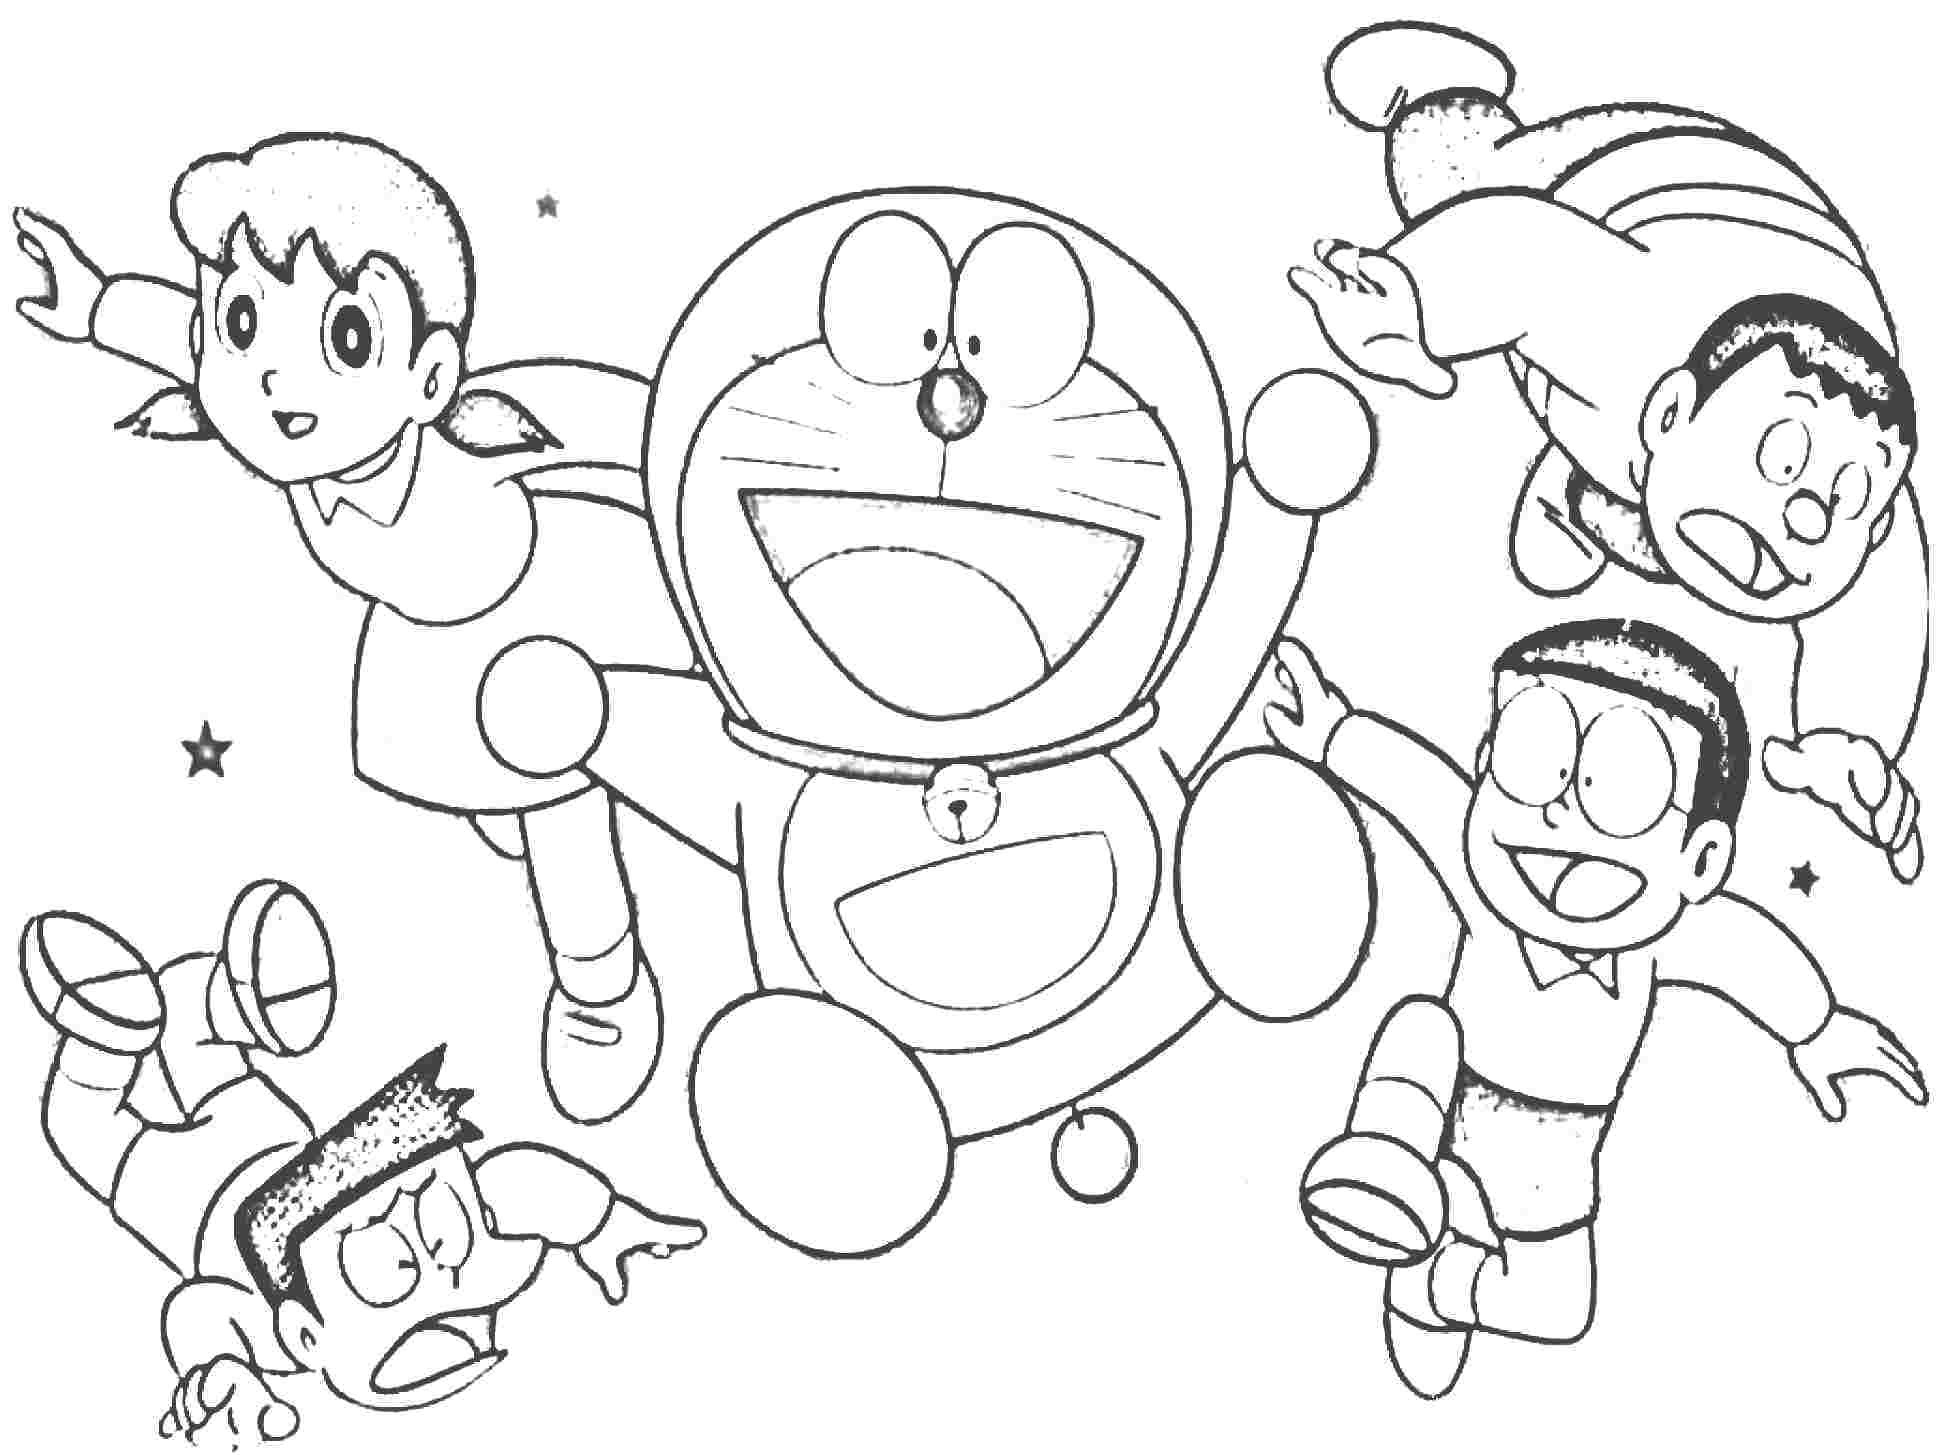 Cheerful Doraemon Coloring Book Makes Your Toddlers Love to Color  Coloring Pages For Toddlers